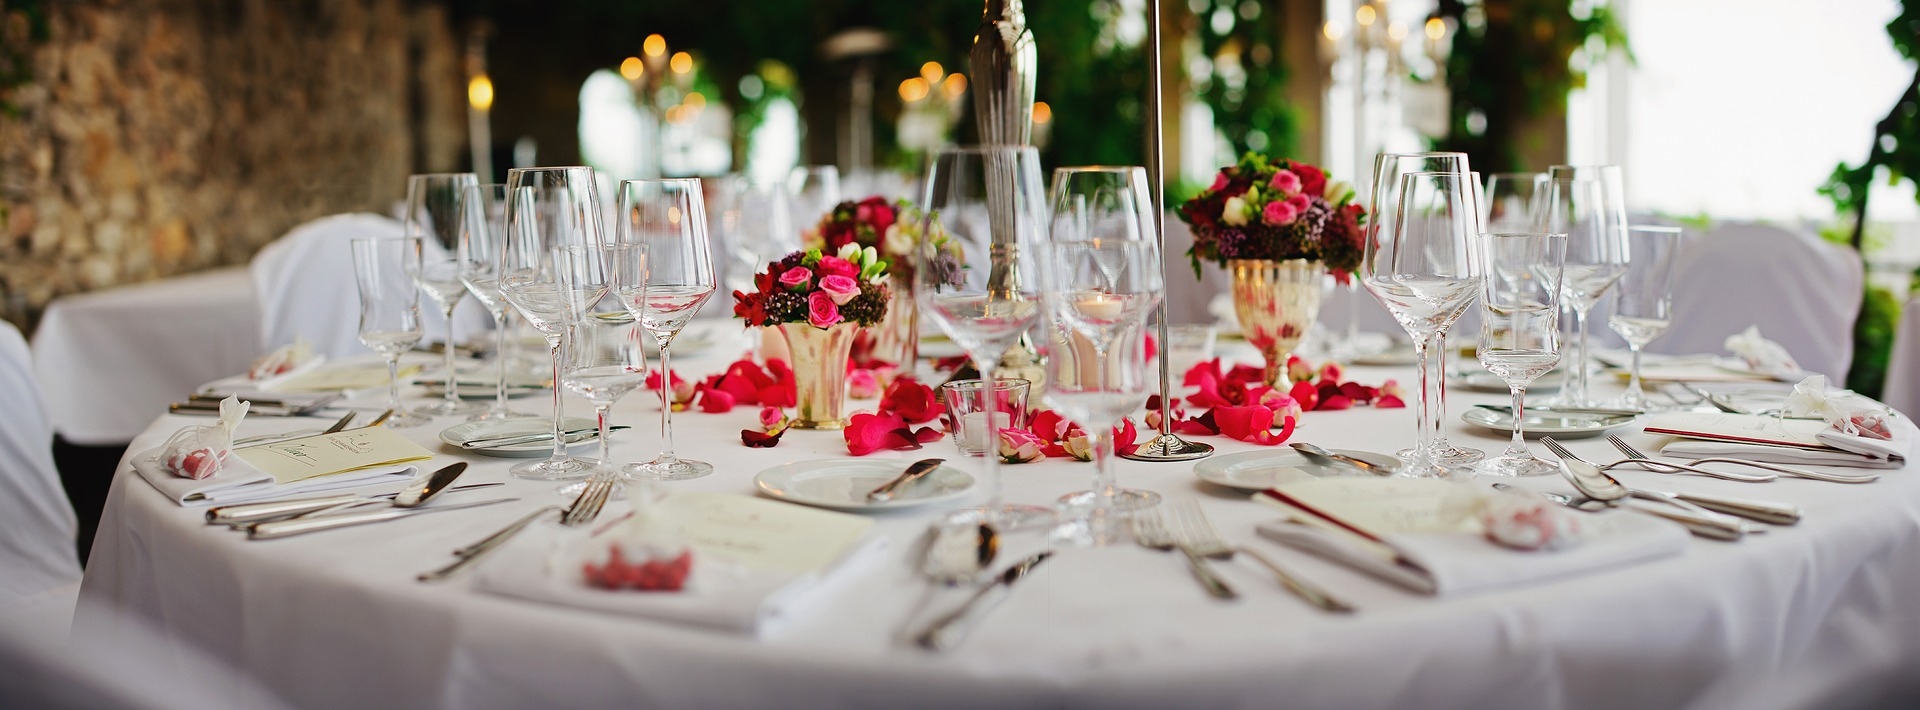 Hôtel Saint Martin **** | hotel near poitiers | Weddings & Events